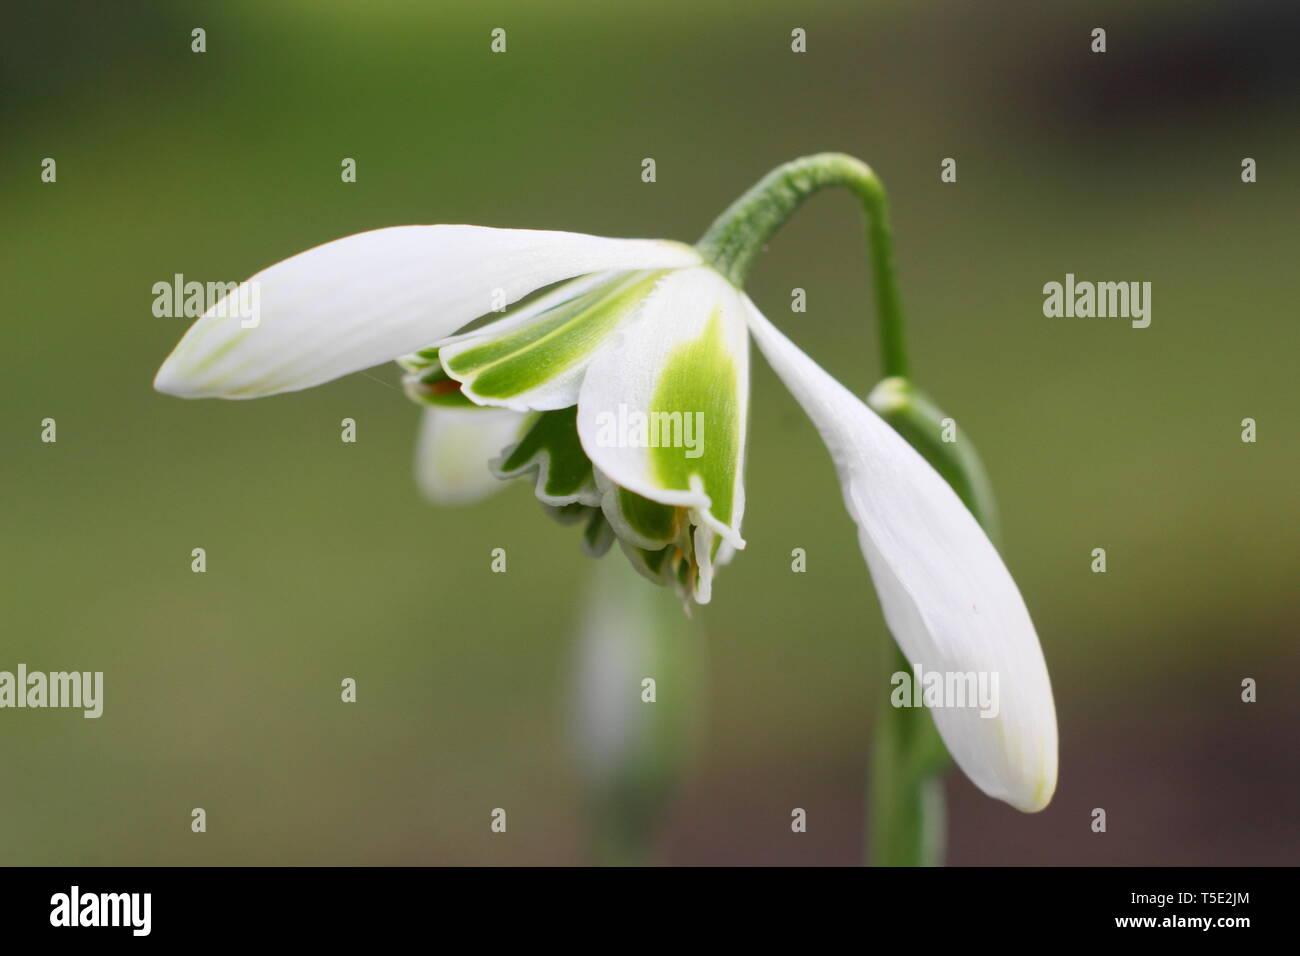 Galanthus 'Jaquenetta'. Distinctive green markings of the double bloom Jaquenetta snowdrop from the Greatorex group - February, UK - Stock Image